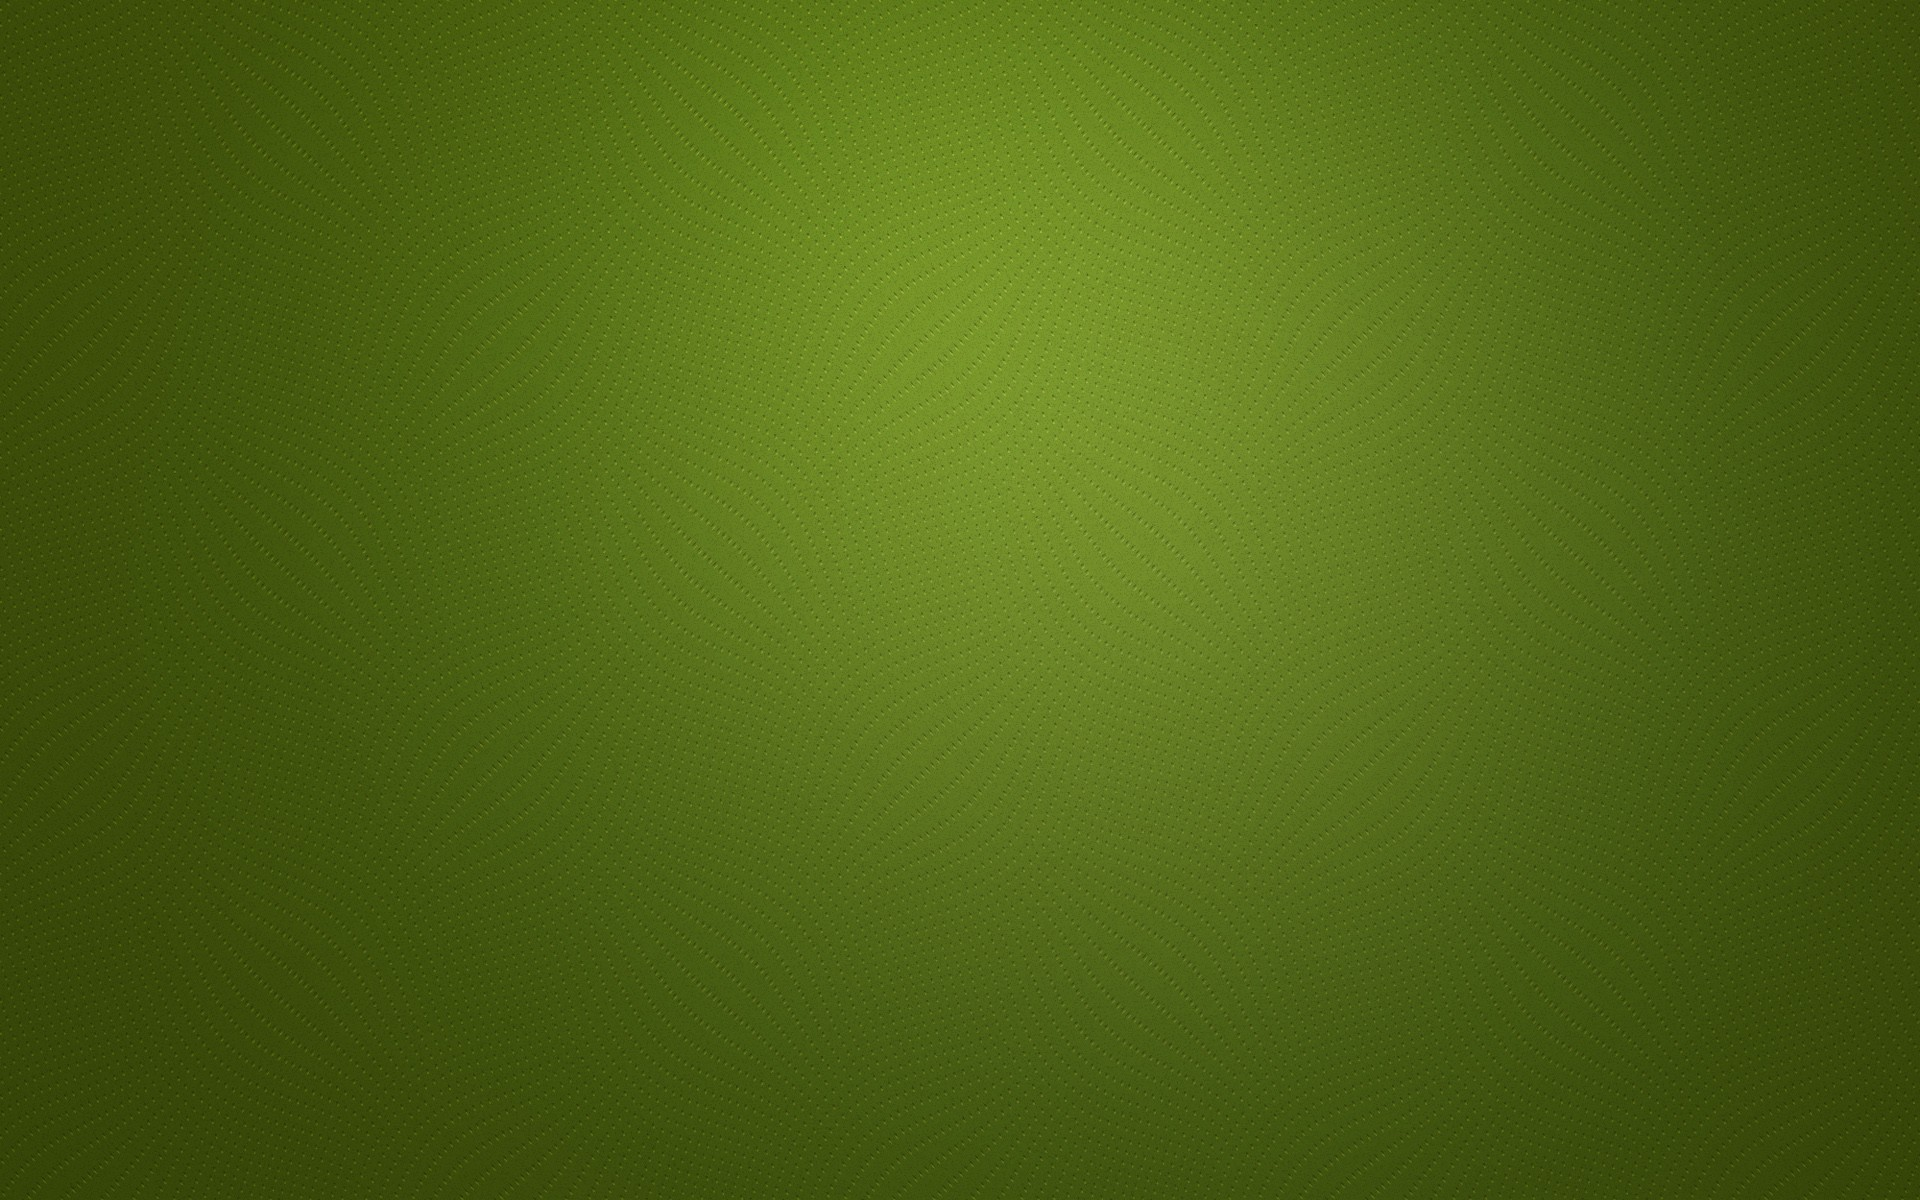 Green minimalistic Textures HD Wallpaper